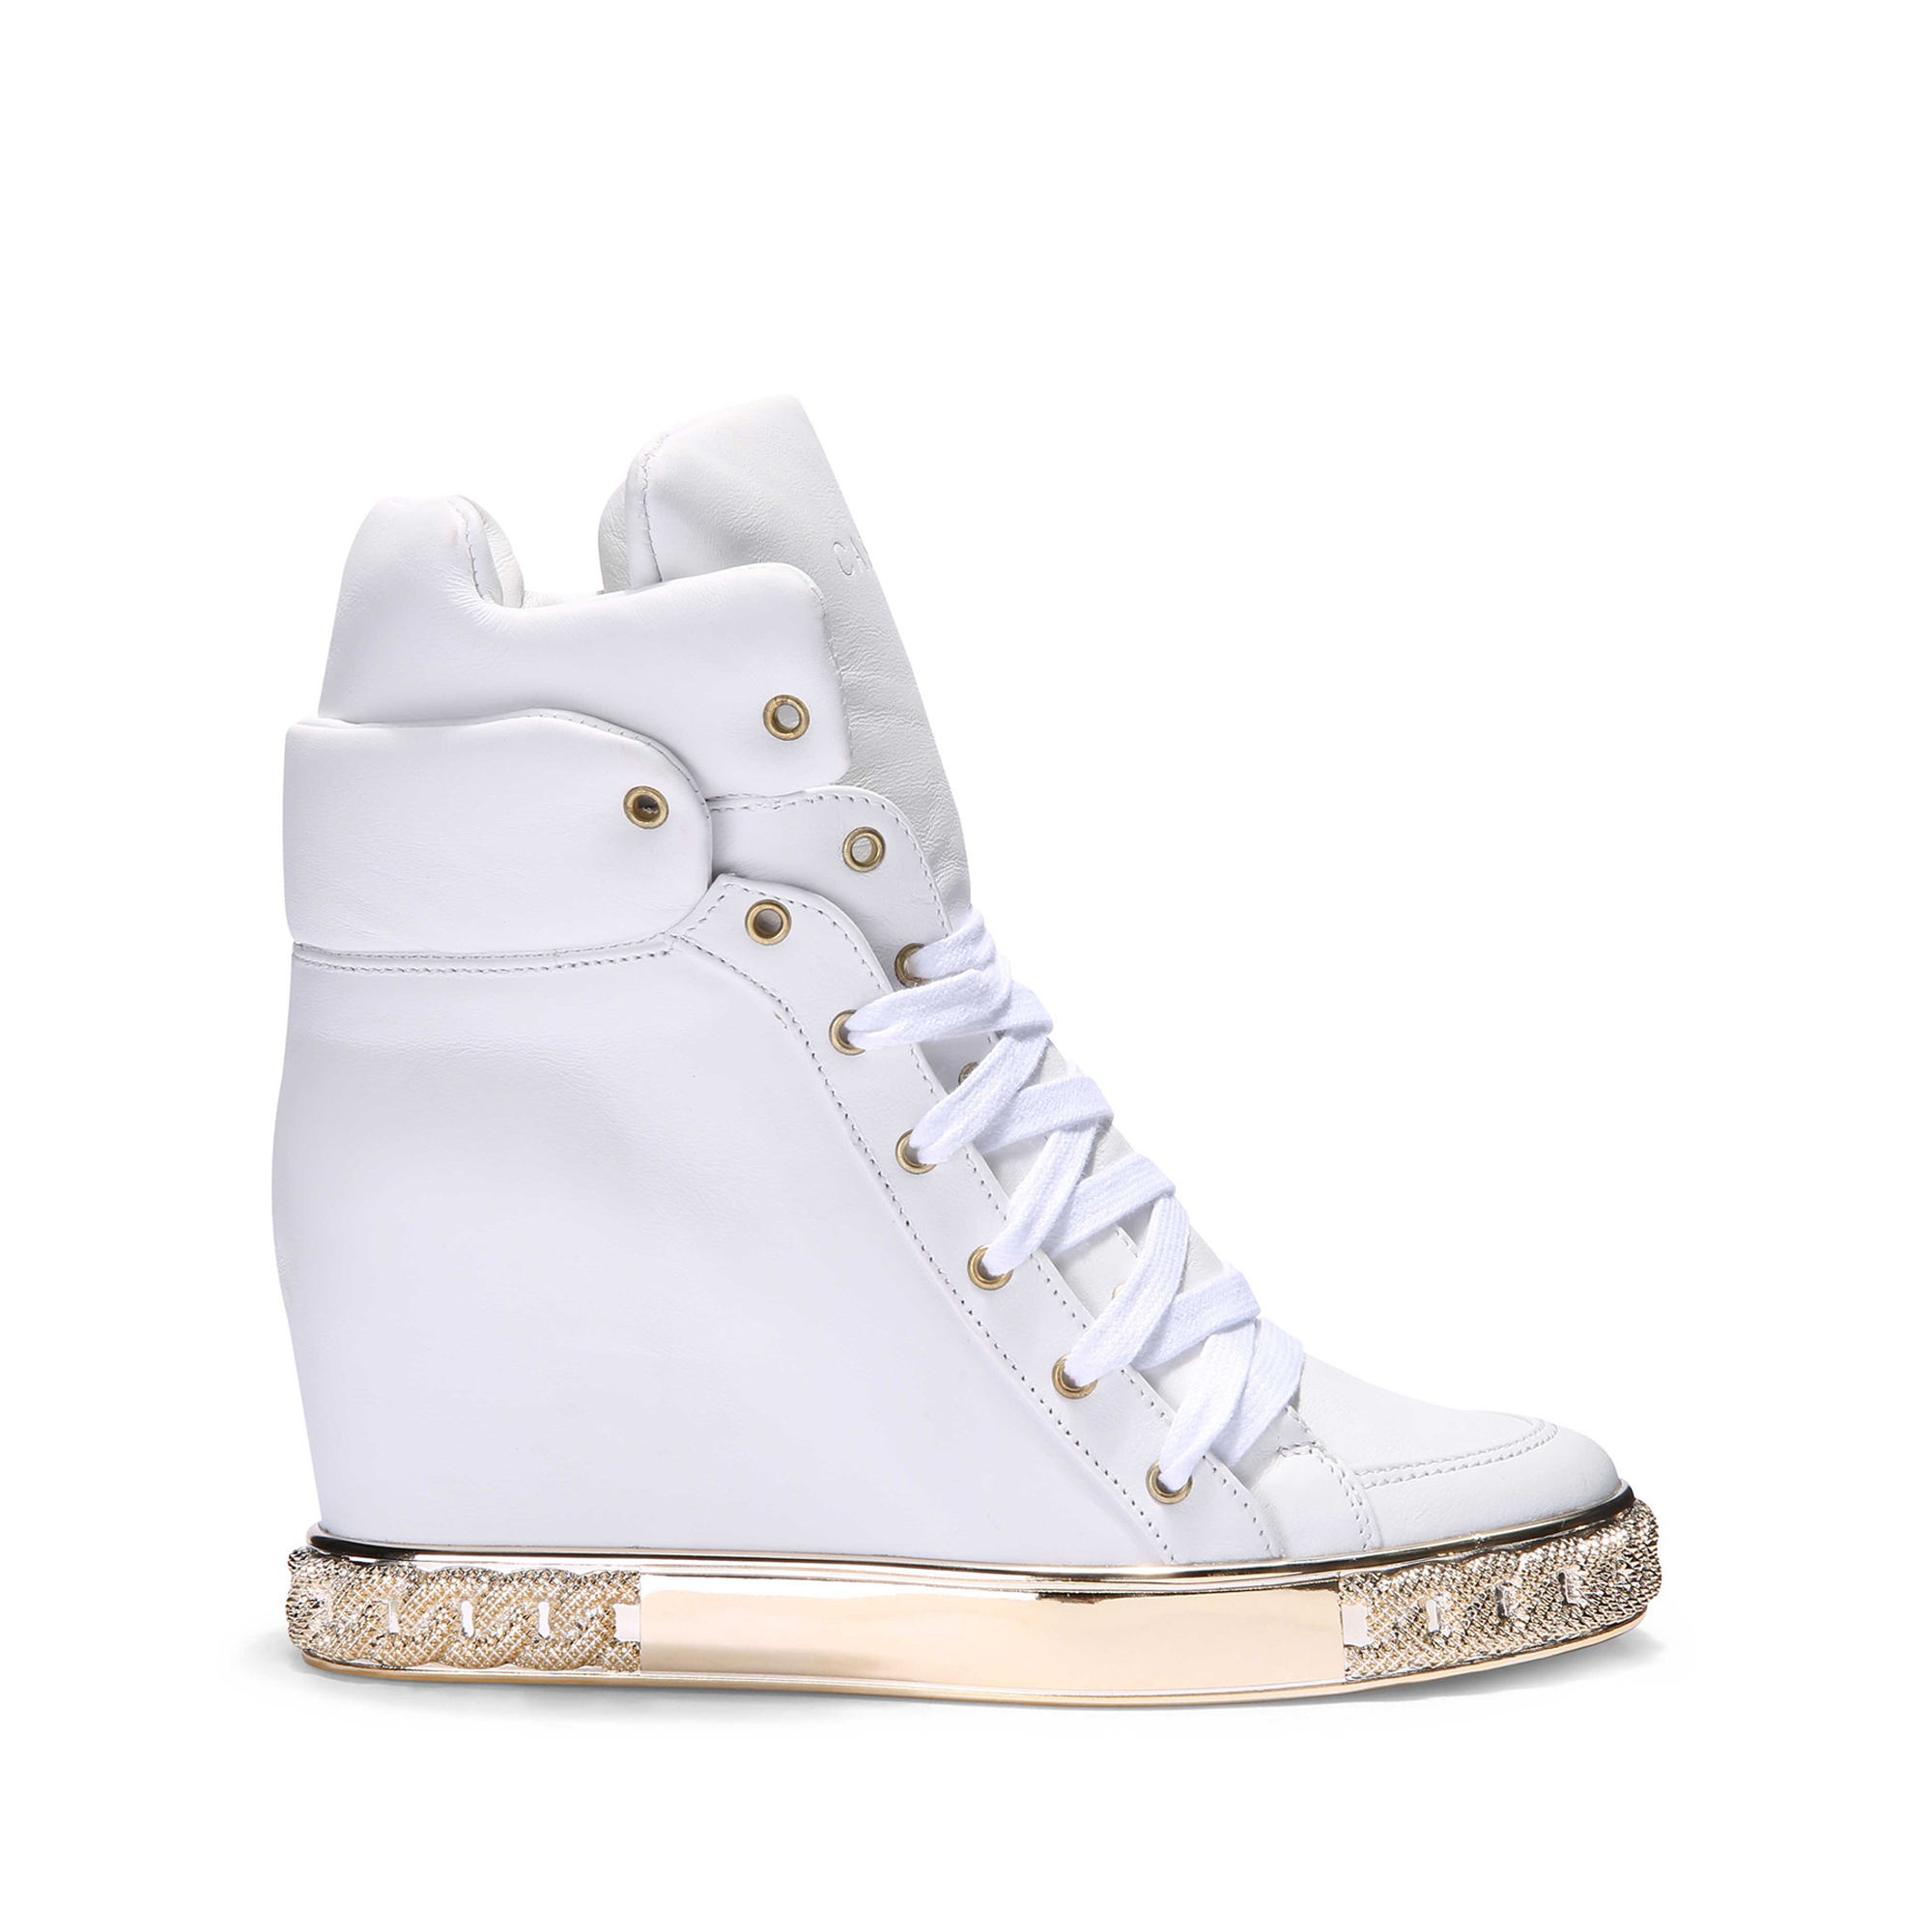 concealed wedge sneakers - White Casadei 0Xe0ZJ9